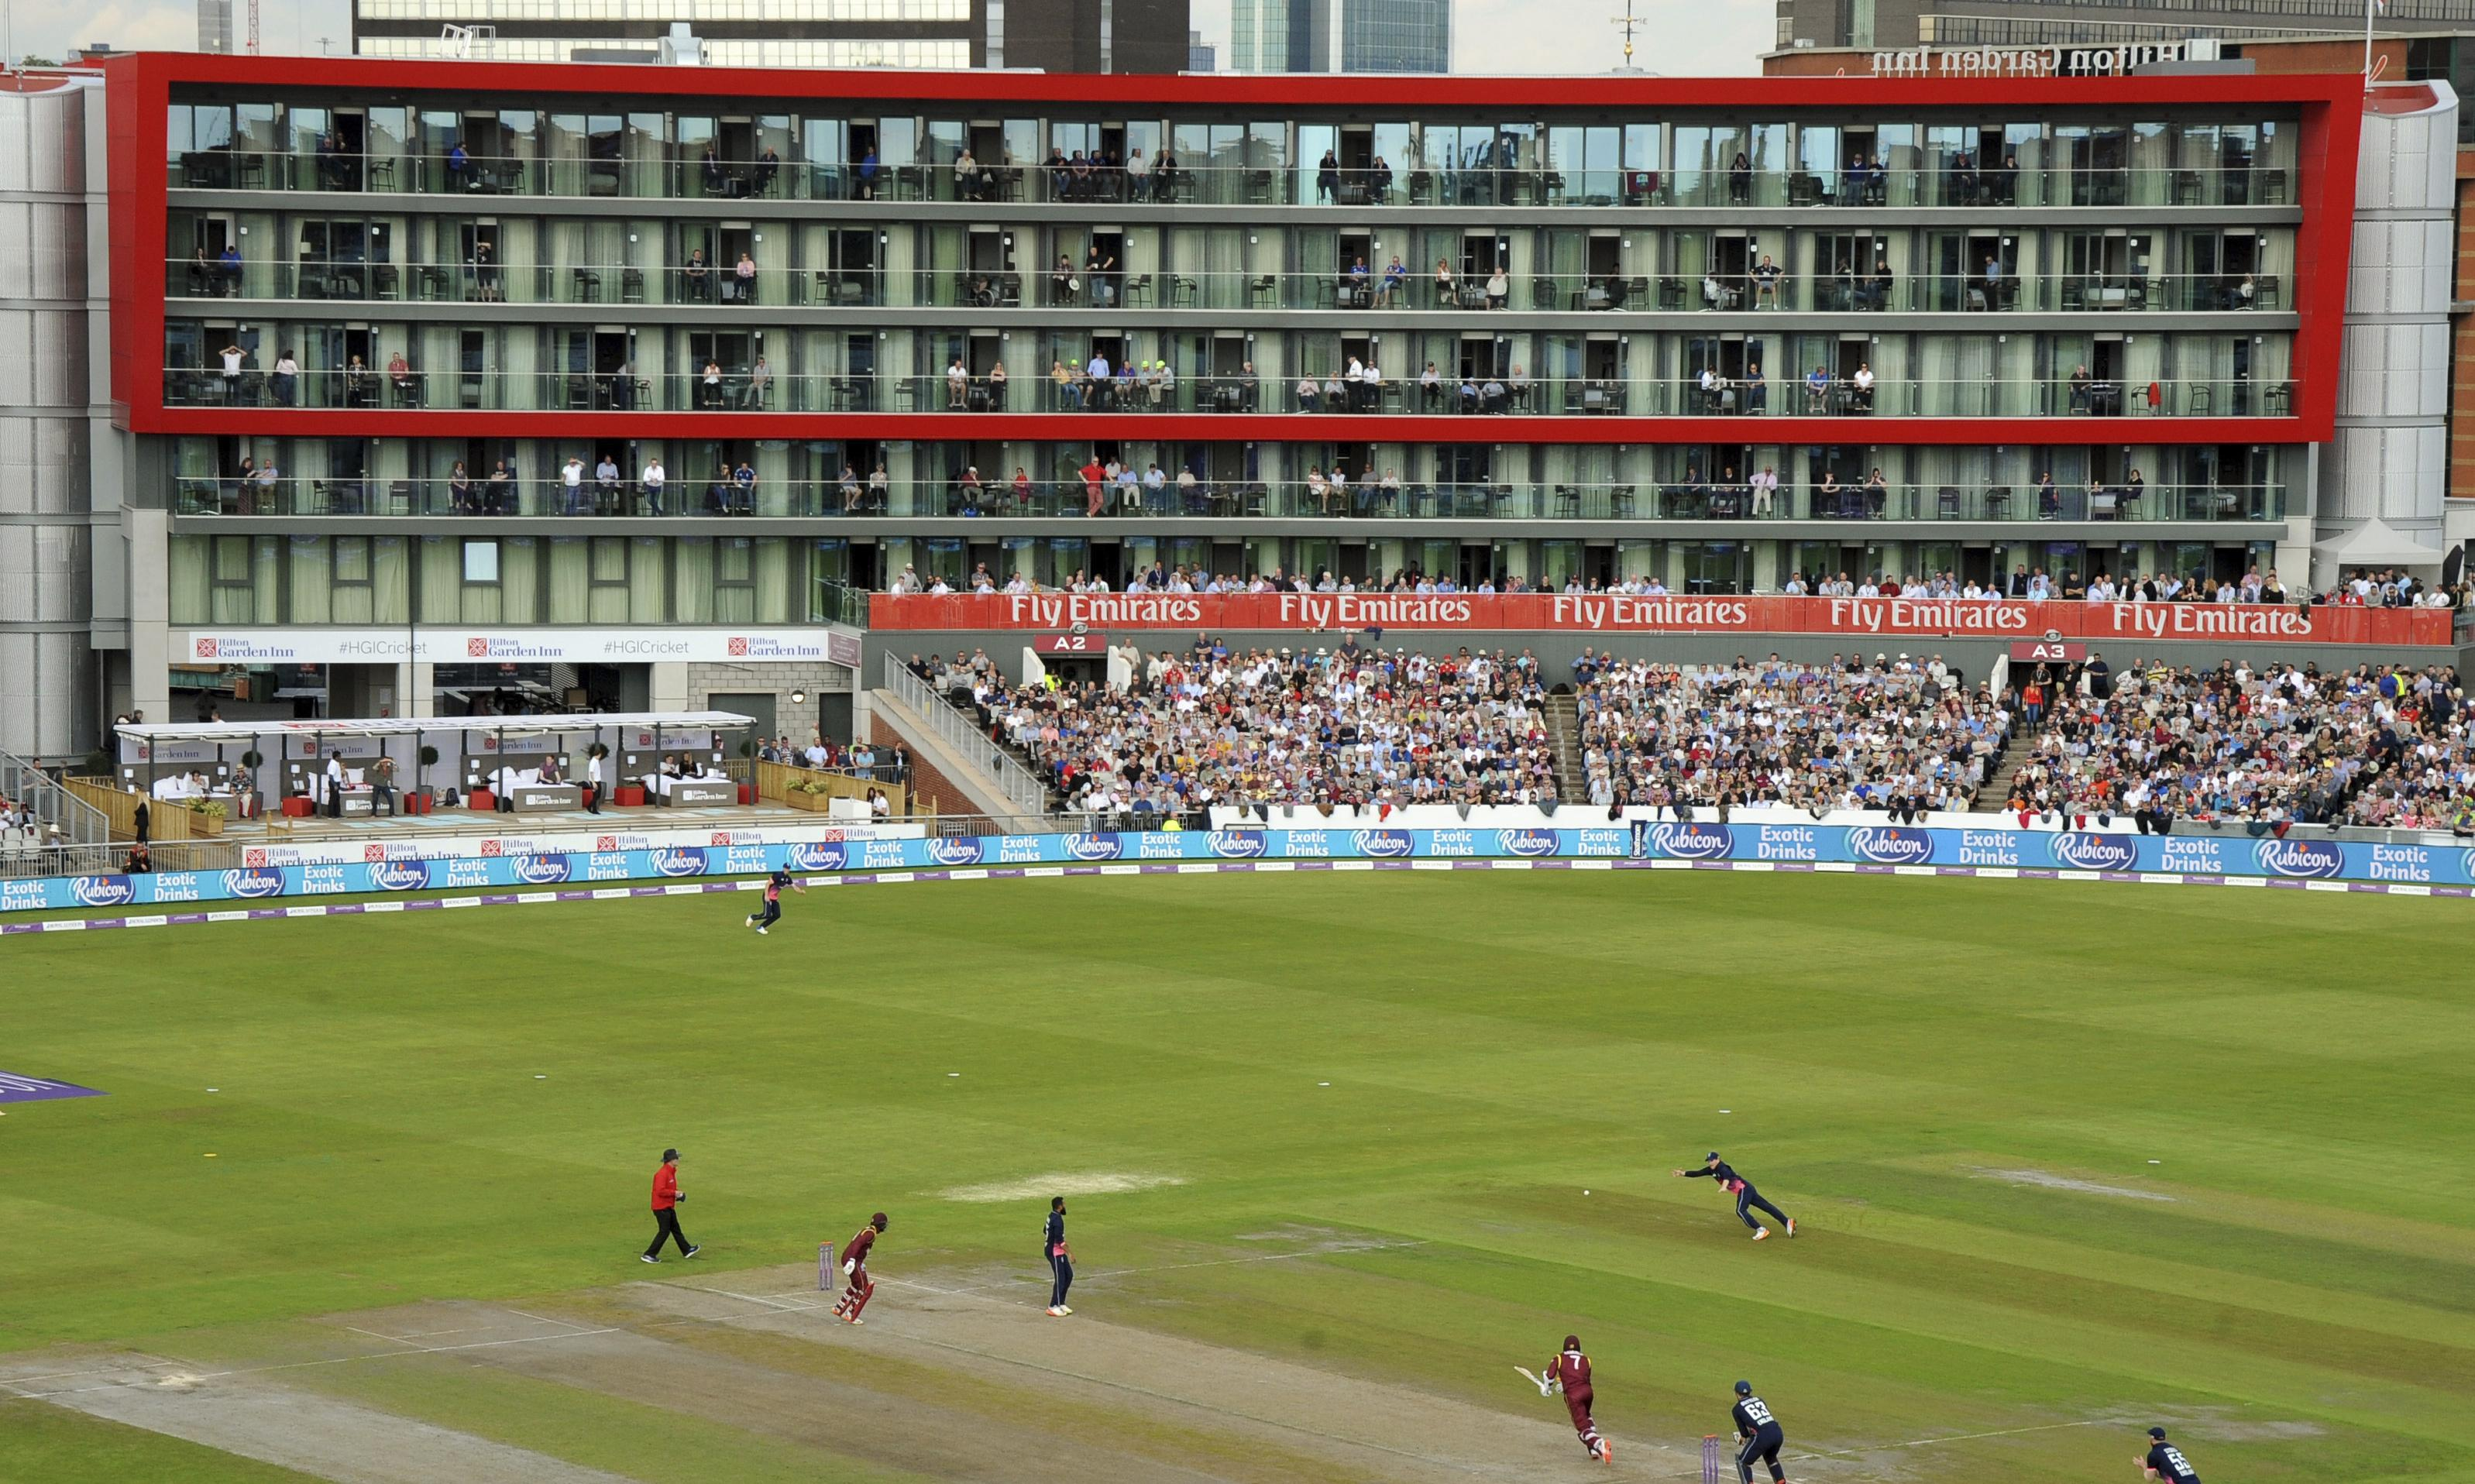 Gareth Batty's guide to the Cricket World Cup grounds